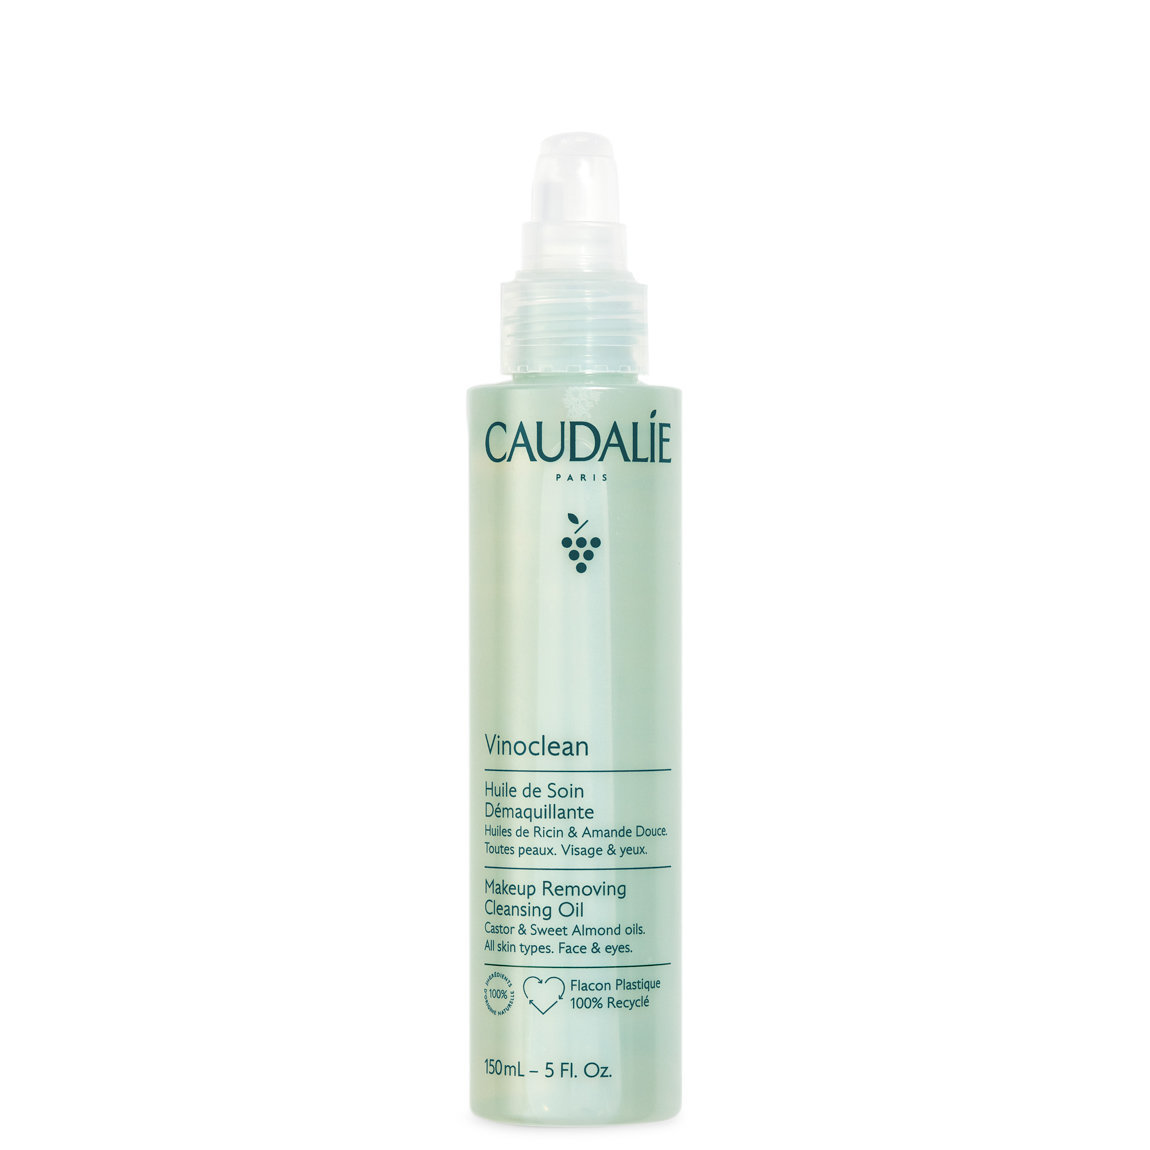 Caudalie Vinoclean Make-Up Removing Cleansing Oil alternative view 1 - product swatch.